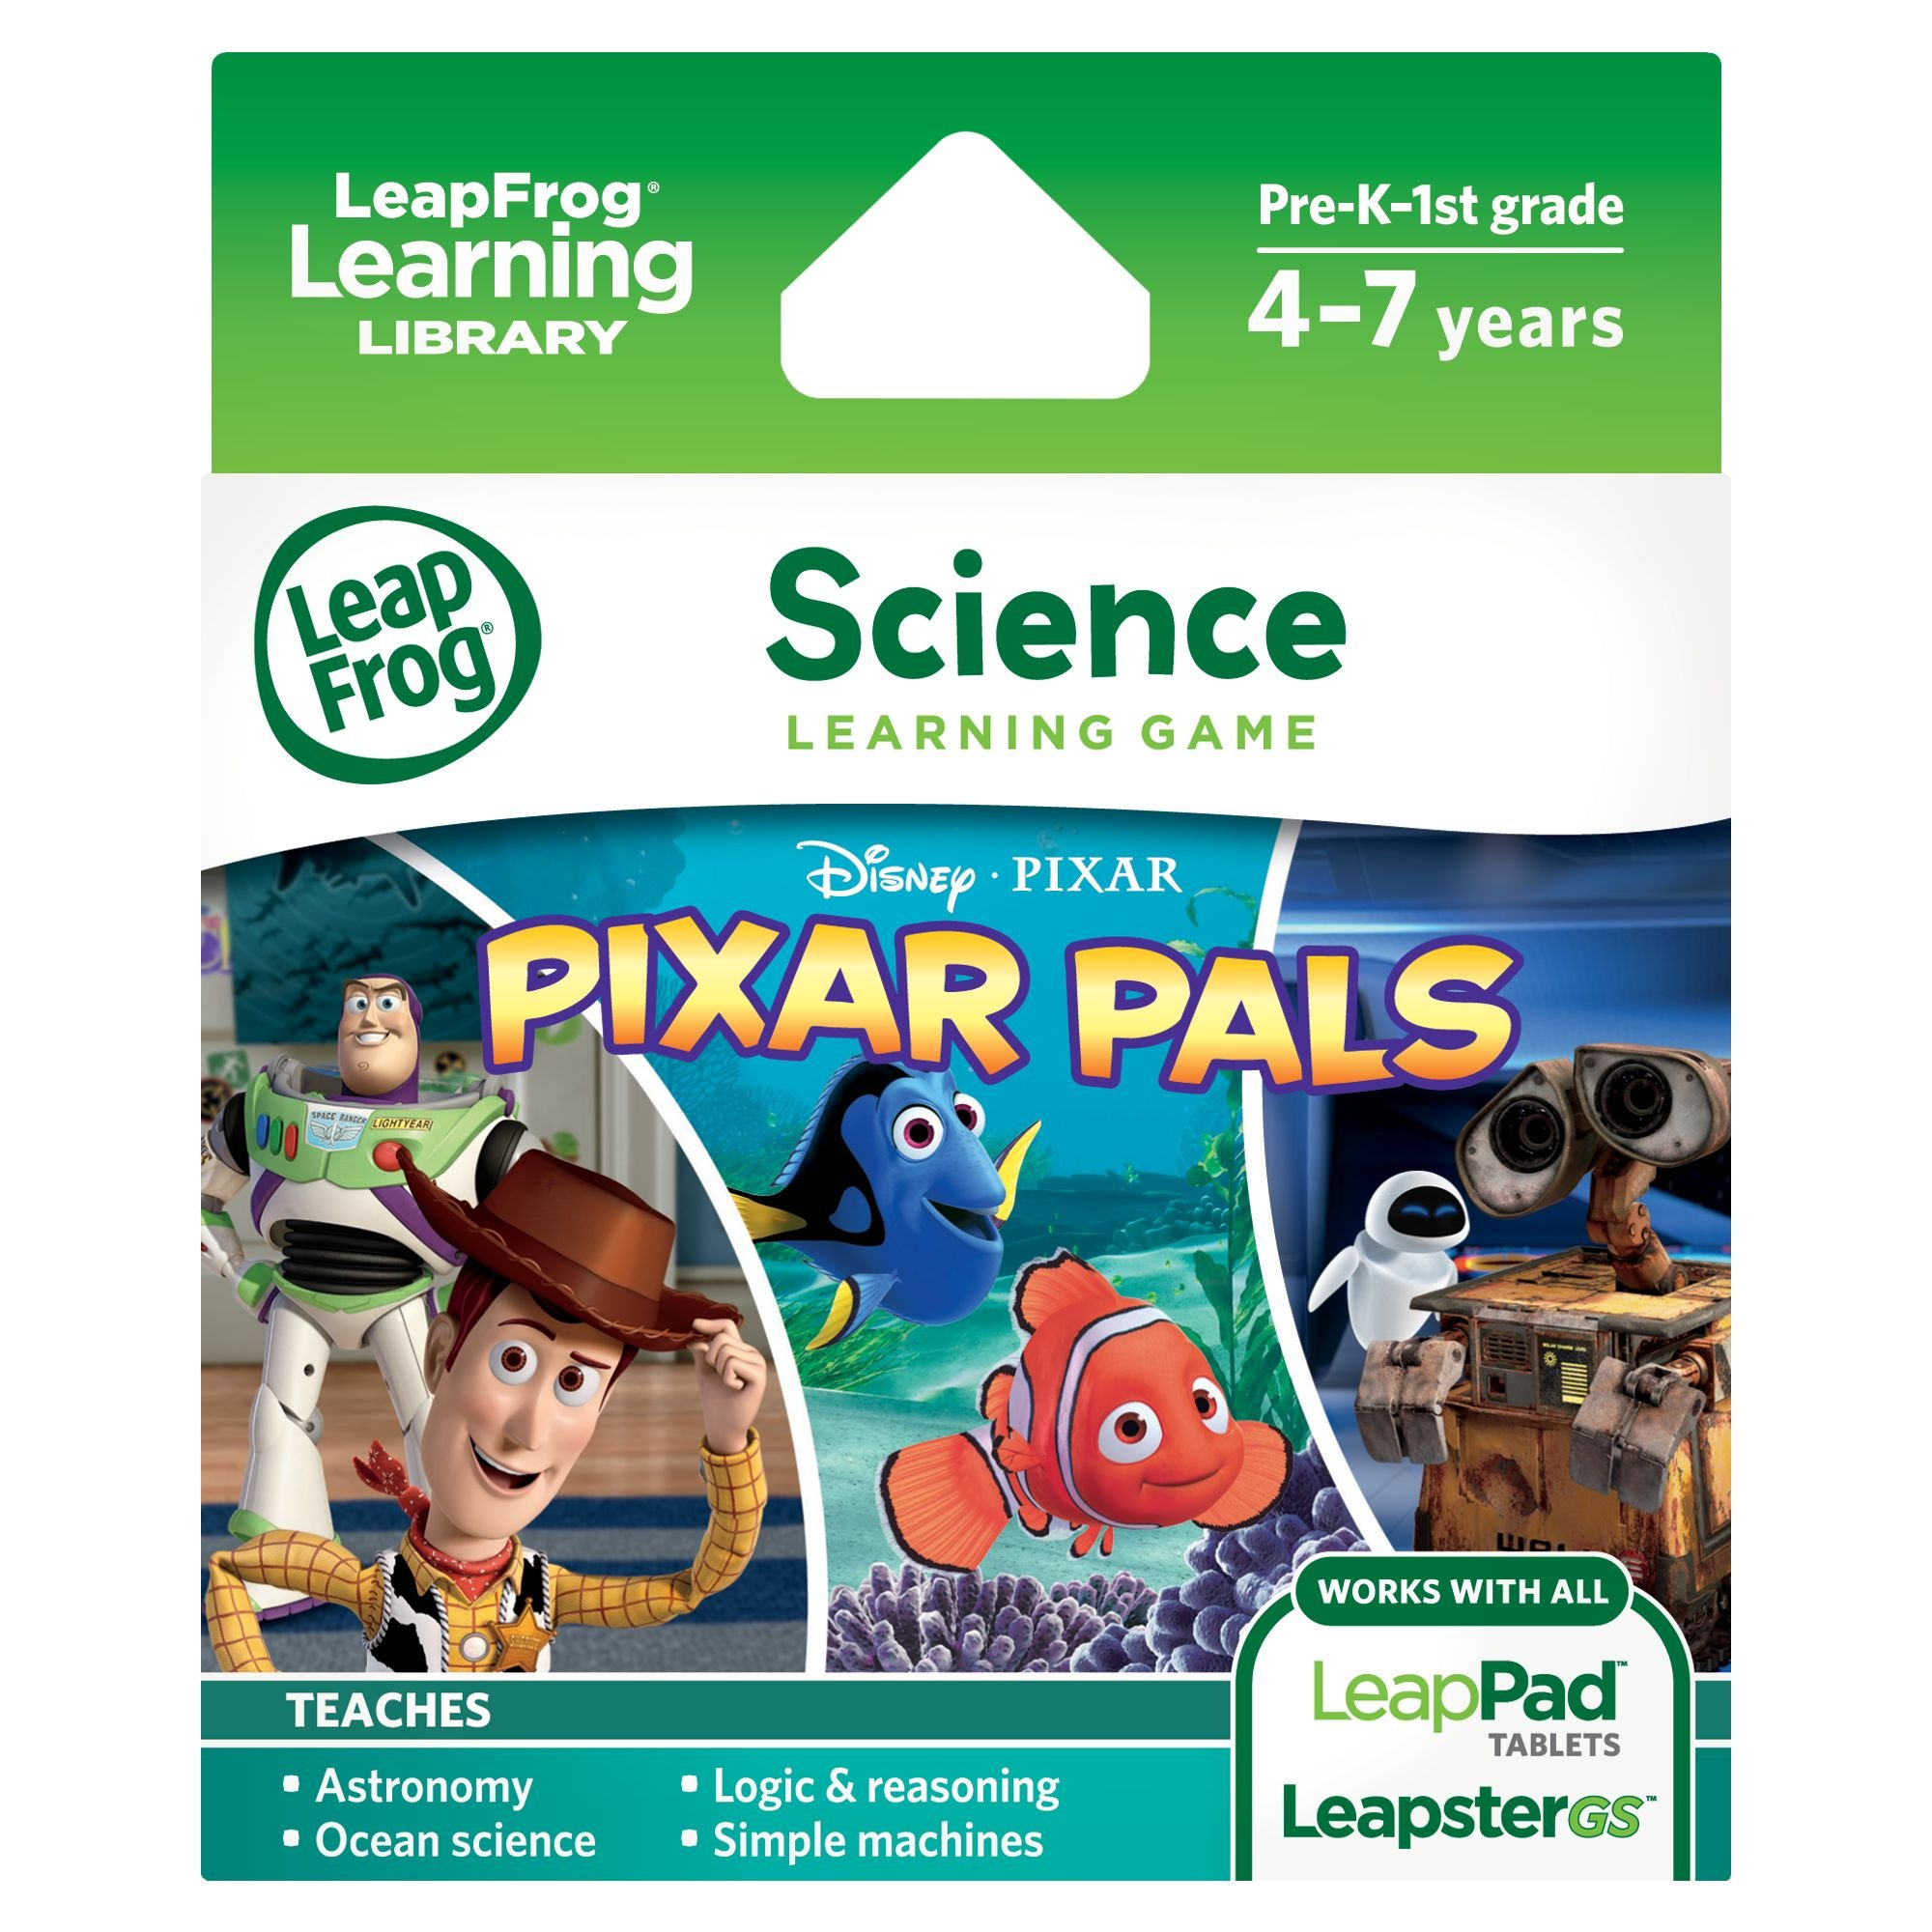 LeapFrog Pixar Pals Learning Game (for LeapPad Platinum, LeapPad Ultra, LeapPad1, LeapPad2, LeapPad3, Leapster Explorer, LeapsterGS Explorer) by LeapFrog (Image #1)